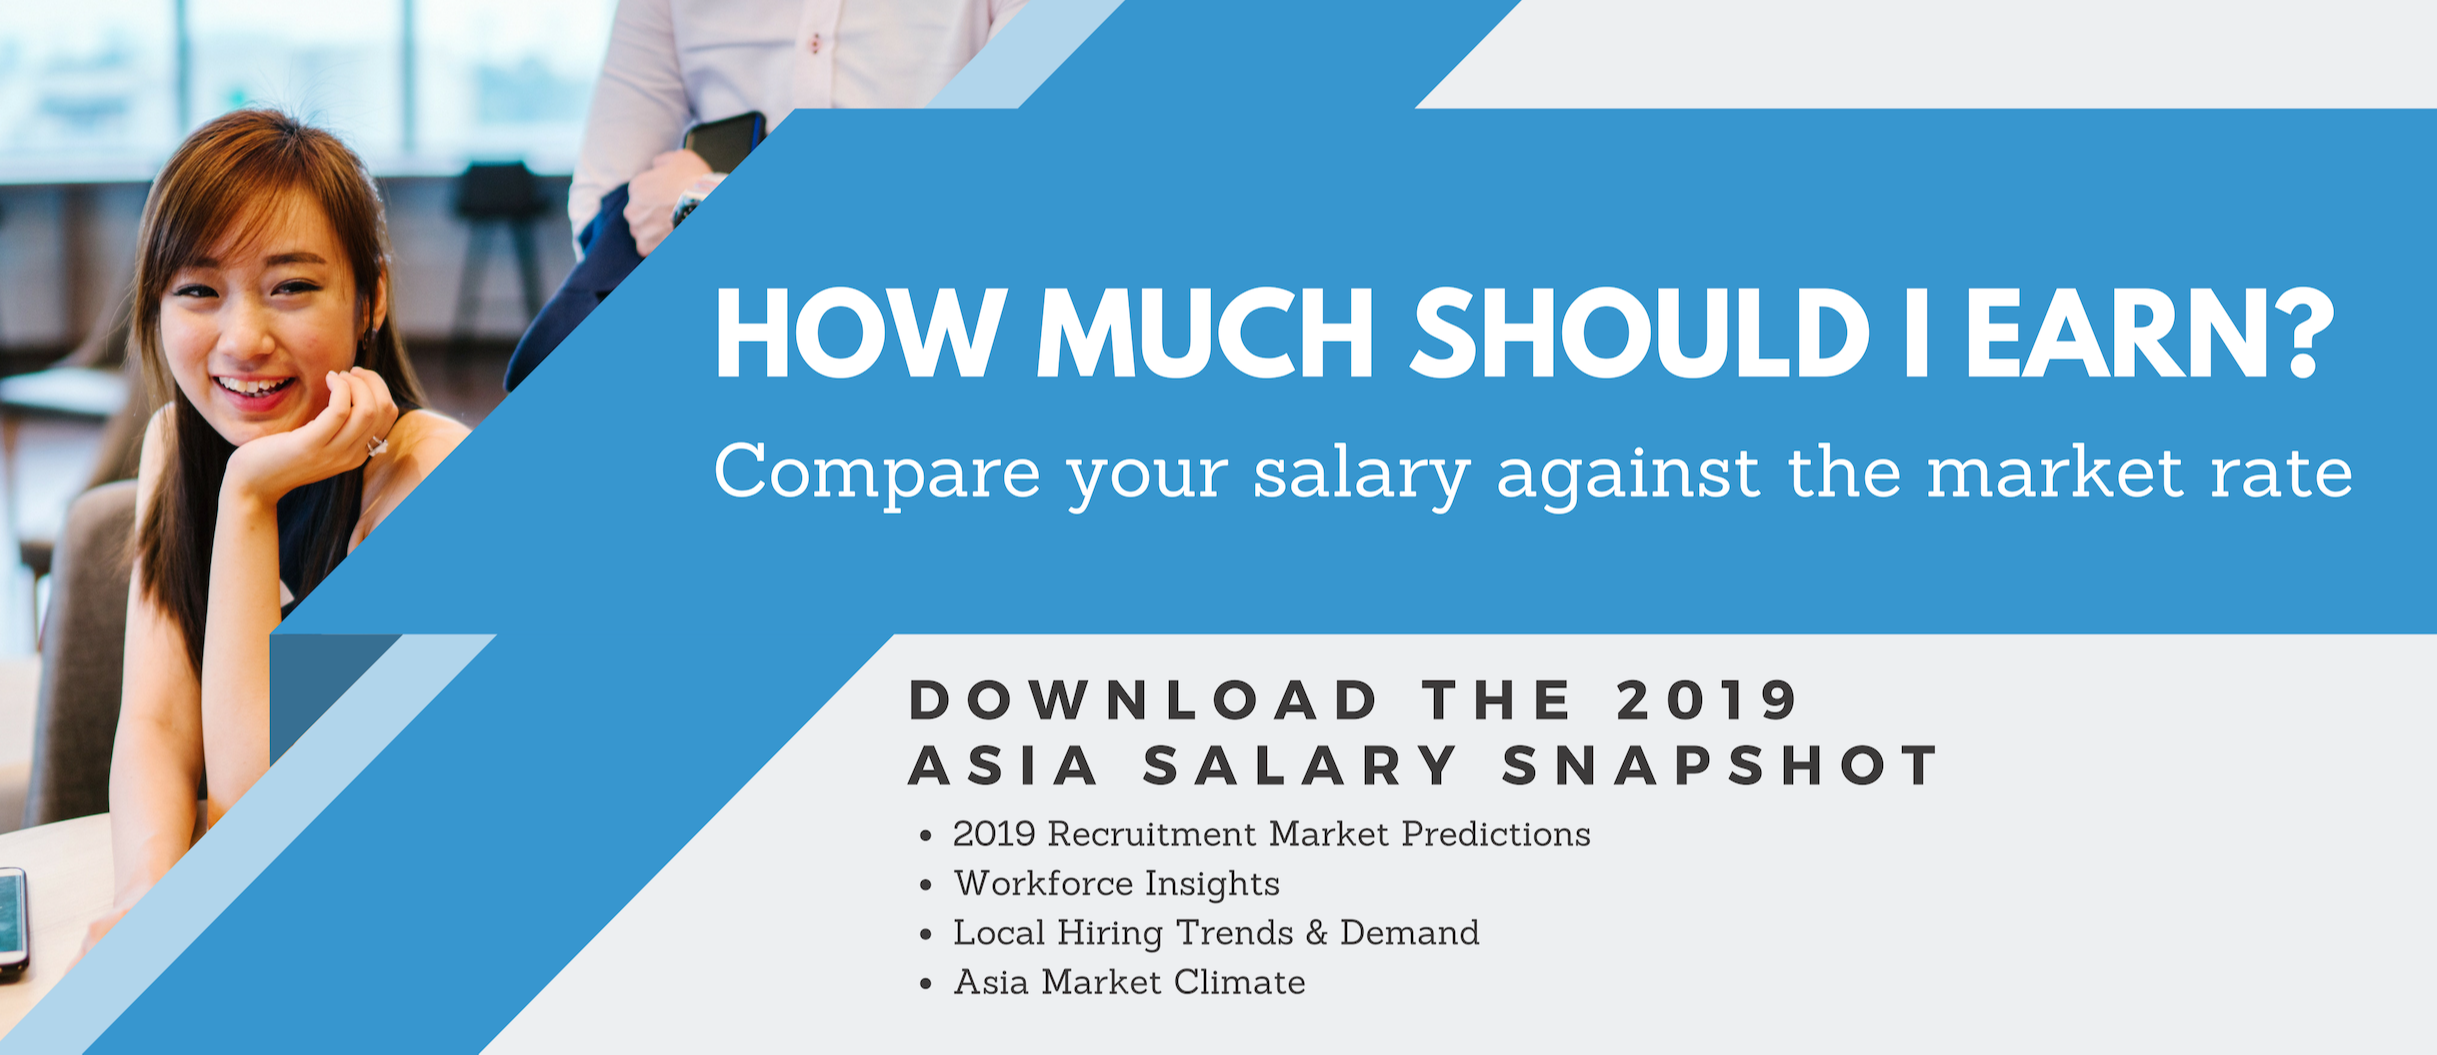 SS2019_How much should I earn-2